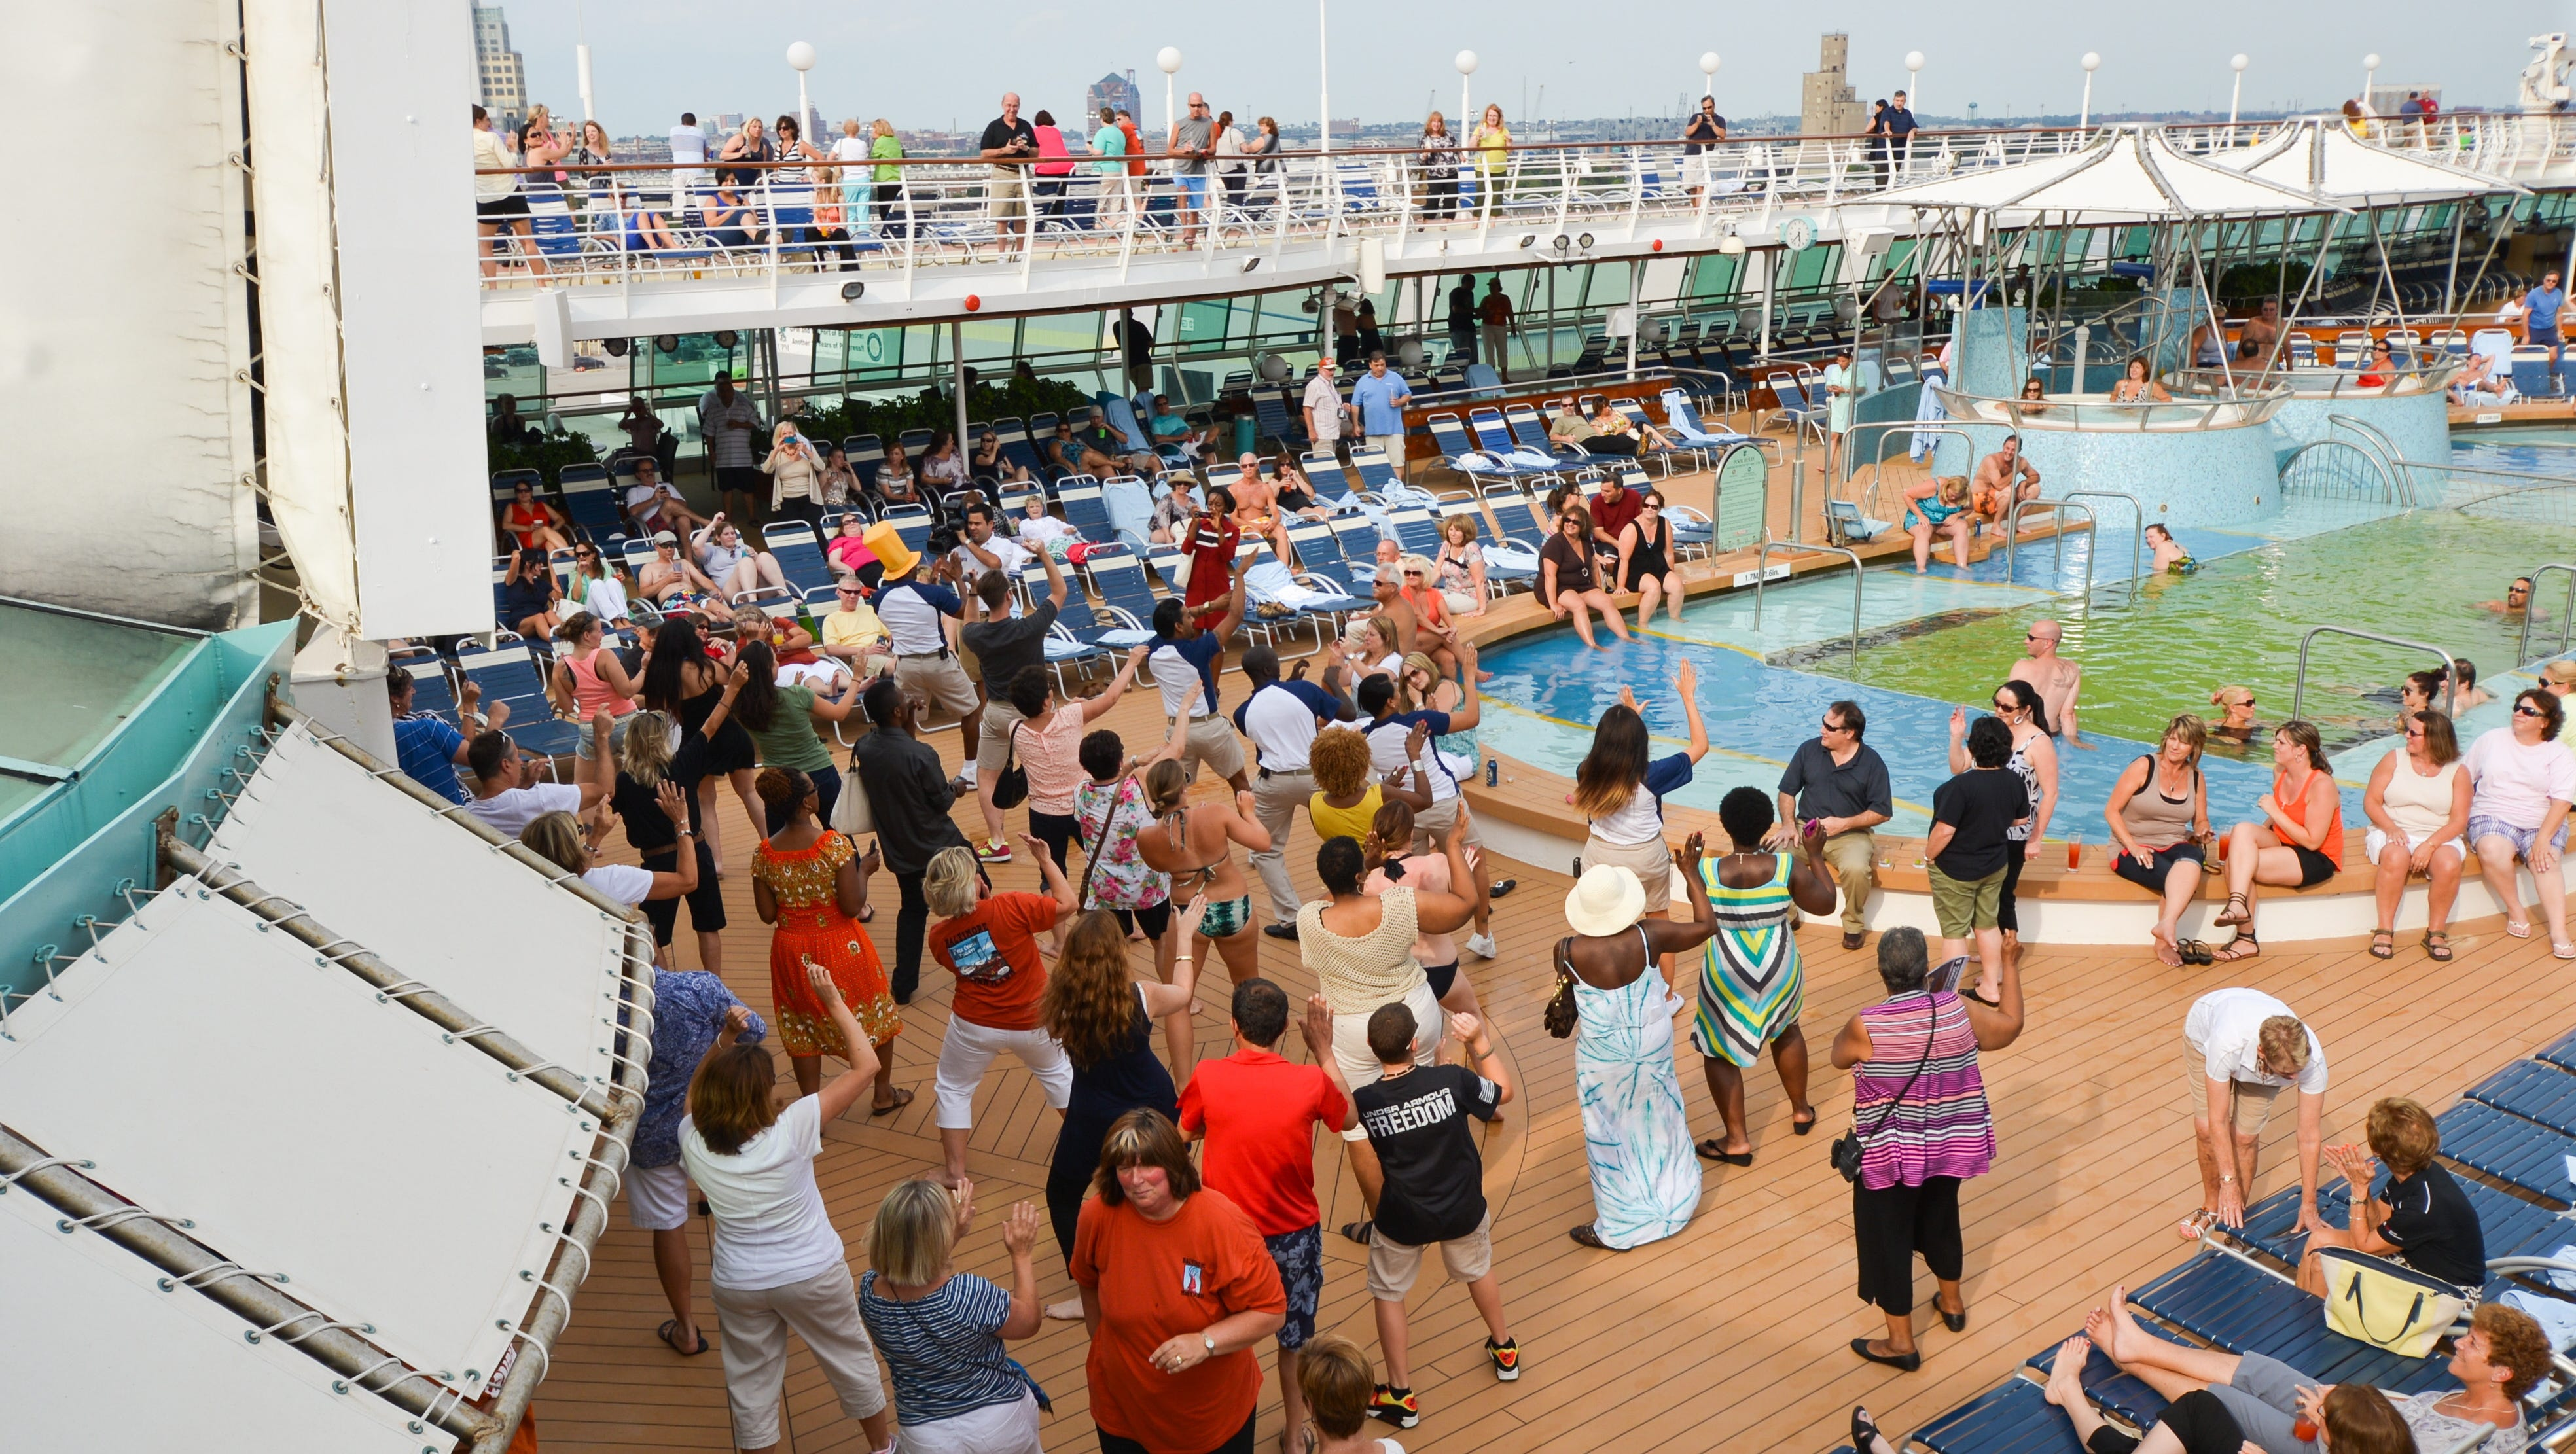 Grandeur of the Seas' entertainment staff gets passengers hopping during a sailaway party with line dancing next to the pool.